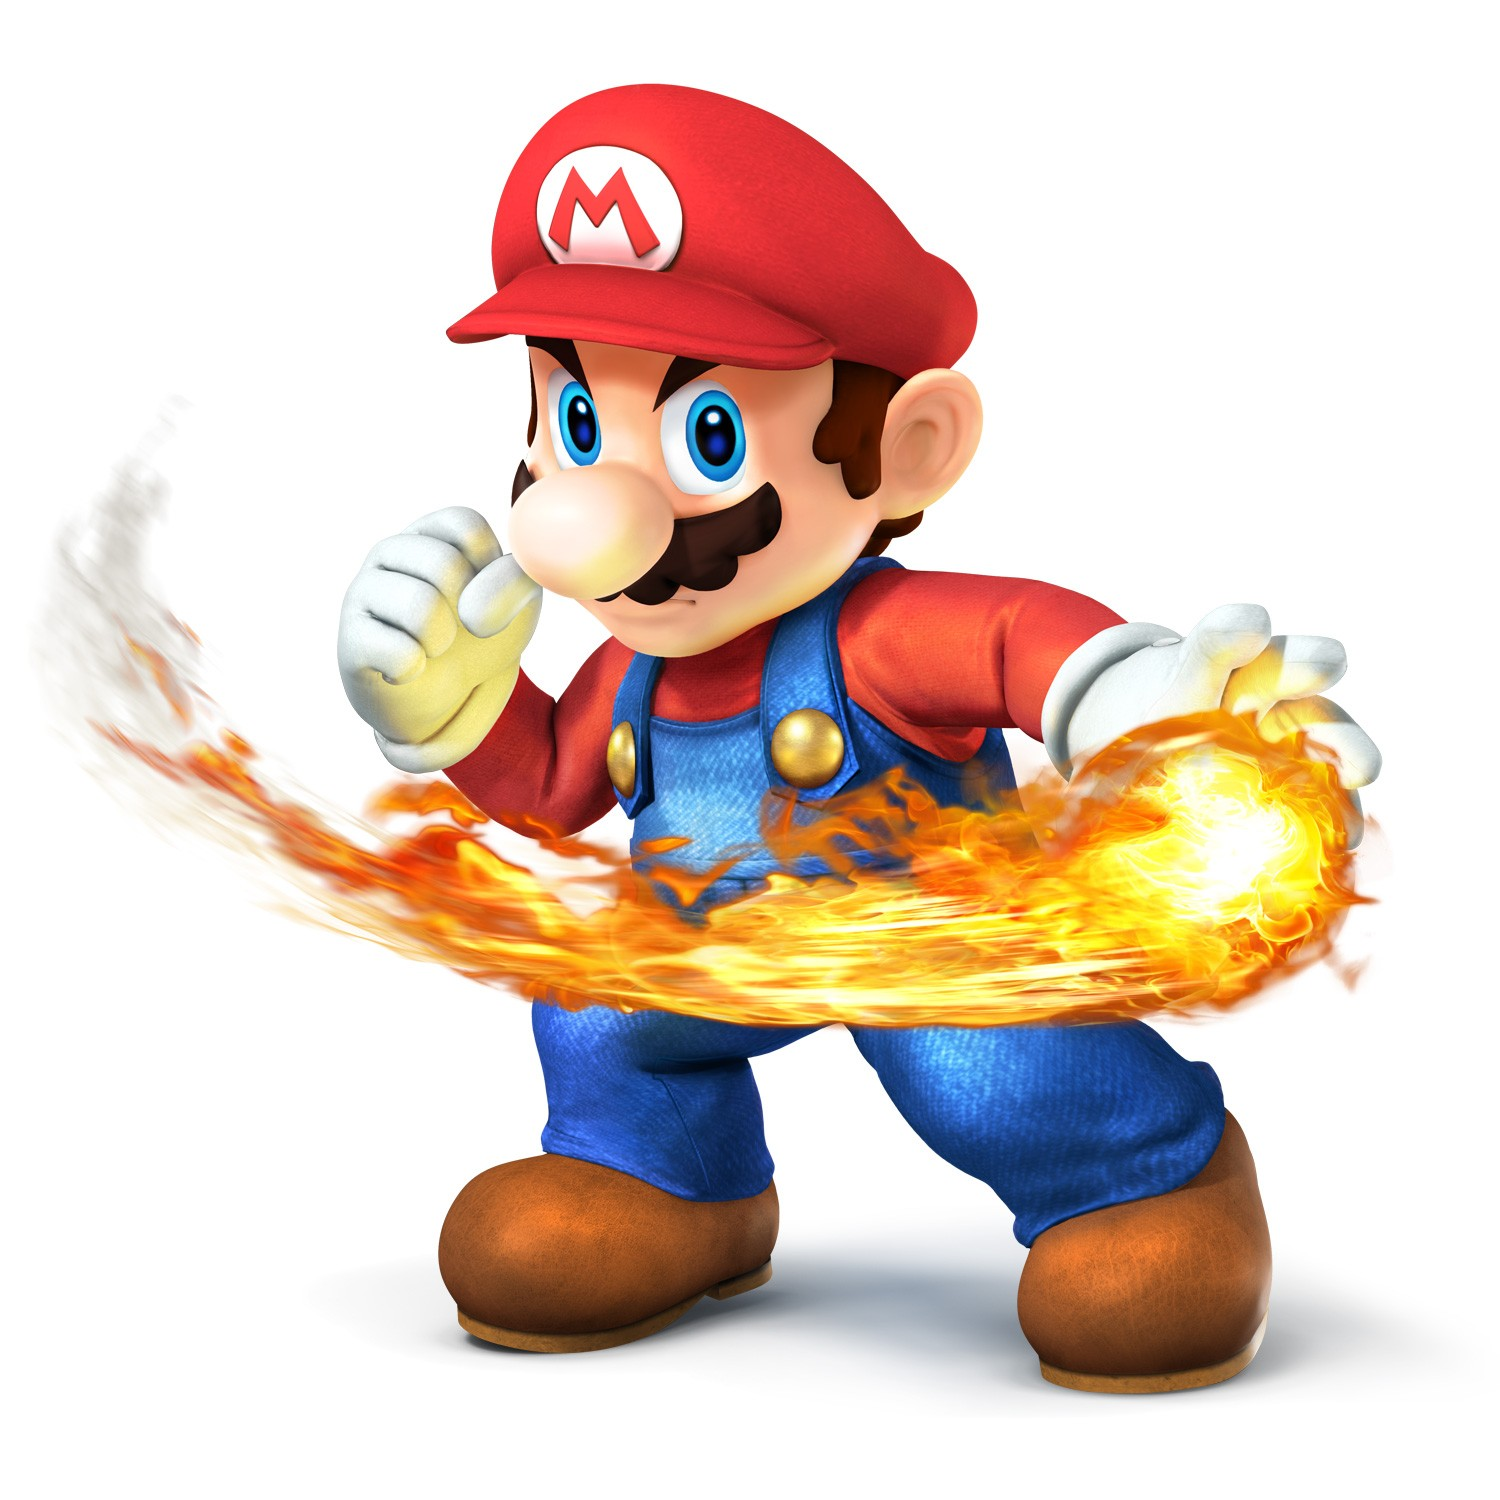 high-quality-pictures-of-the-smash-bros